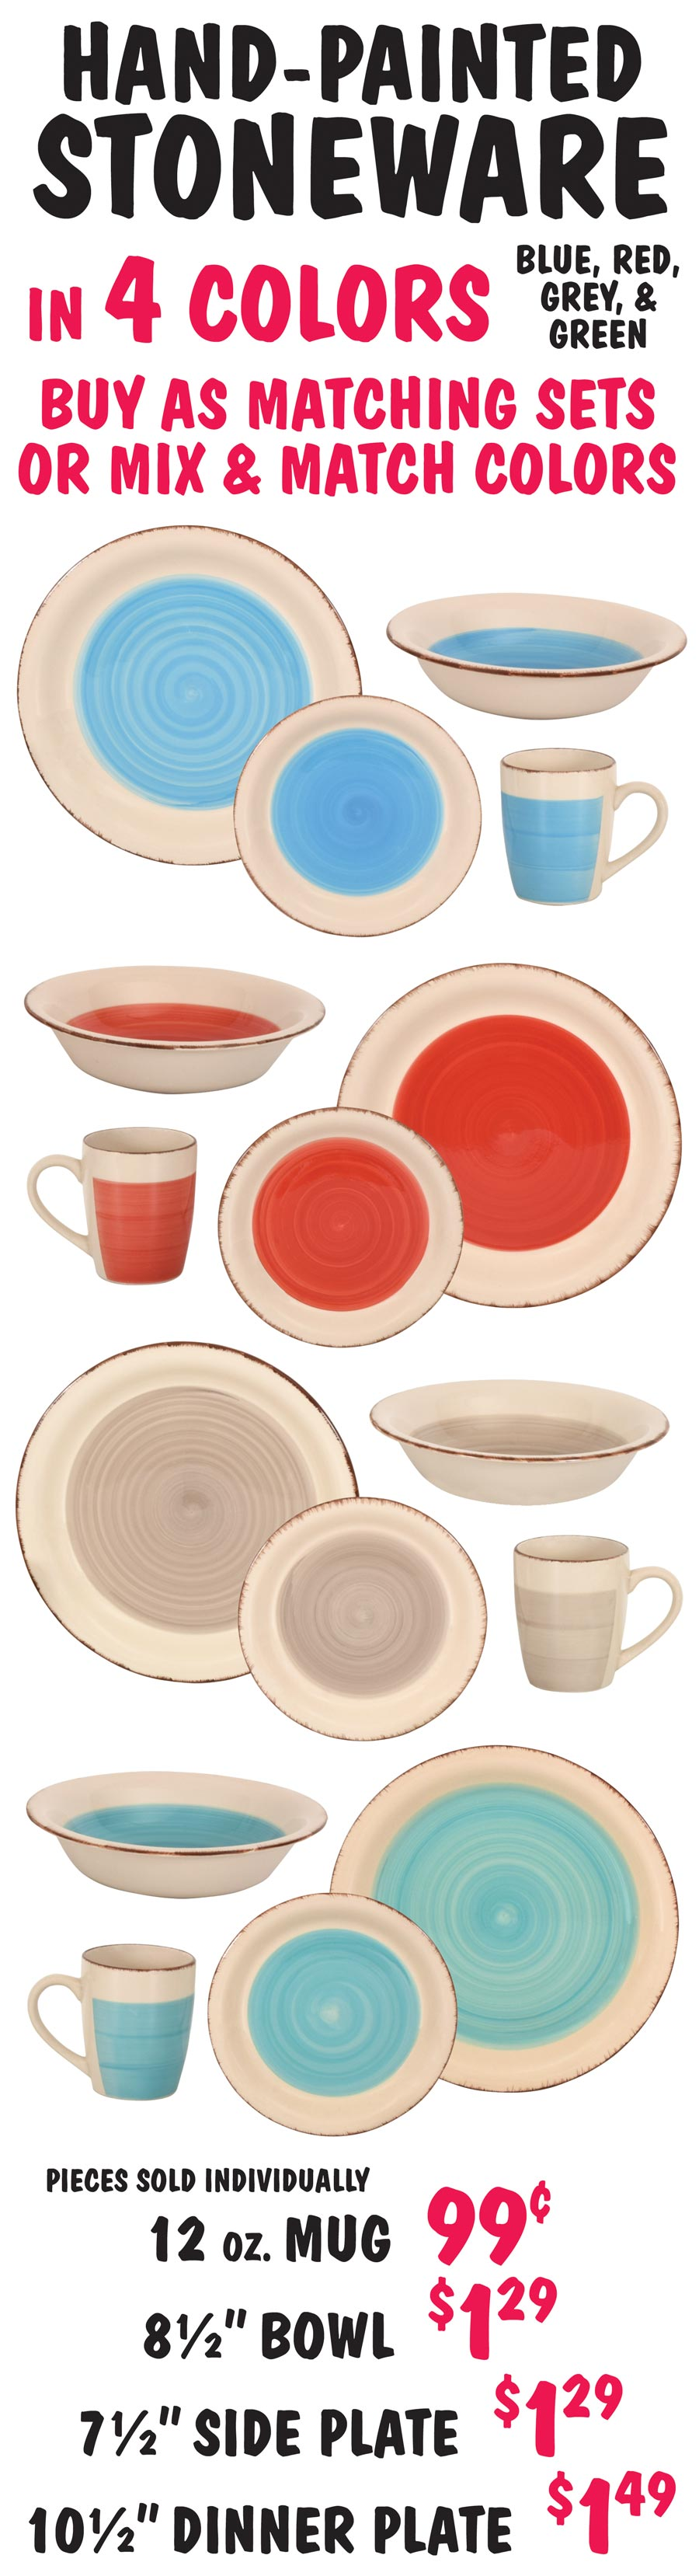 Hand-Painted Stoneware - Mugs, Bowls, and Plates in 4 Colors - Mug 99 cents, Bowl $1.29, Side Plate $1.29, Dinner Plate $1.49